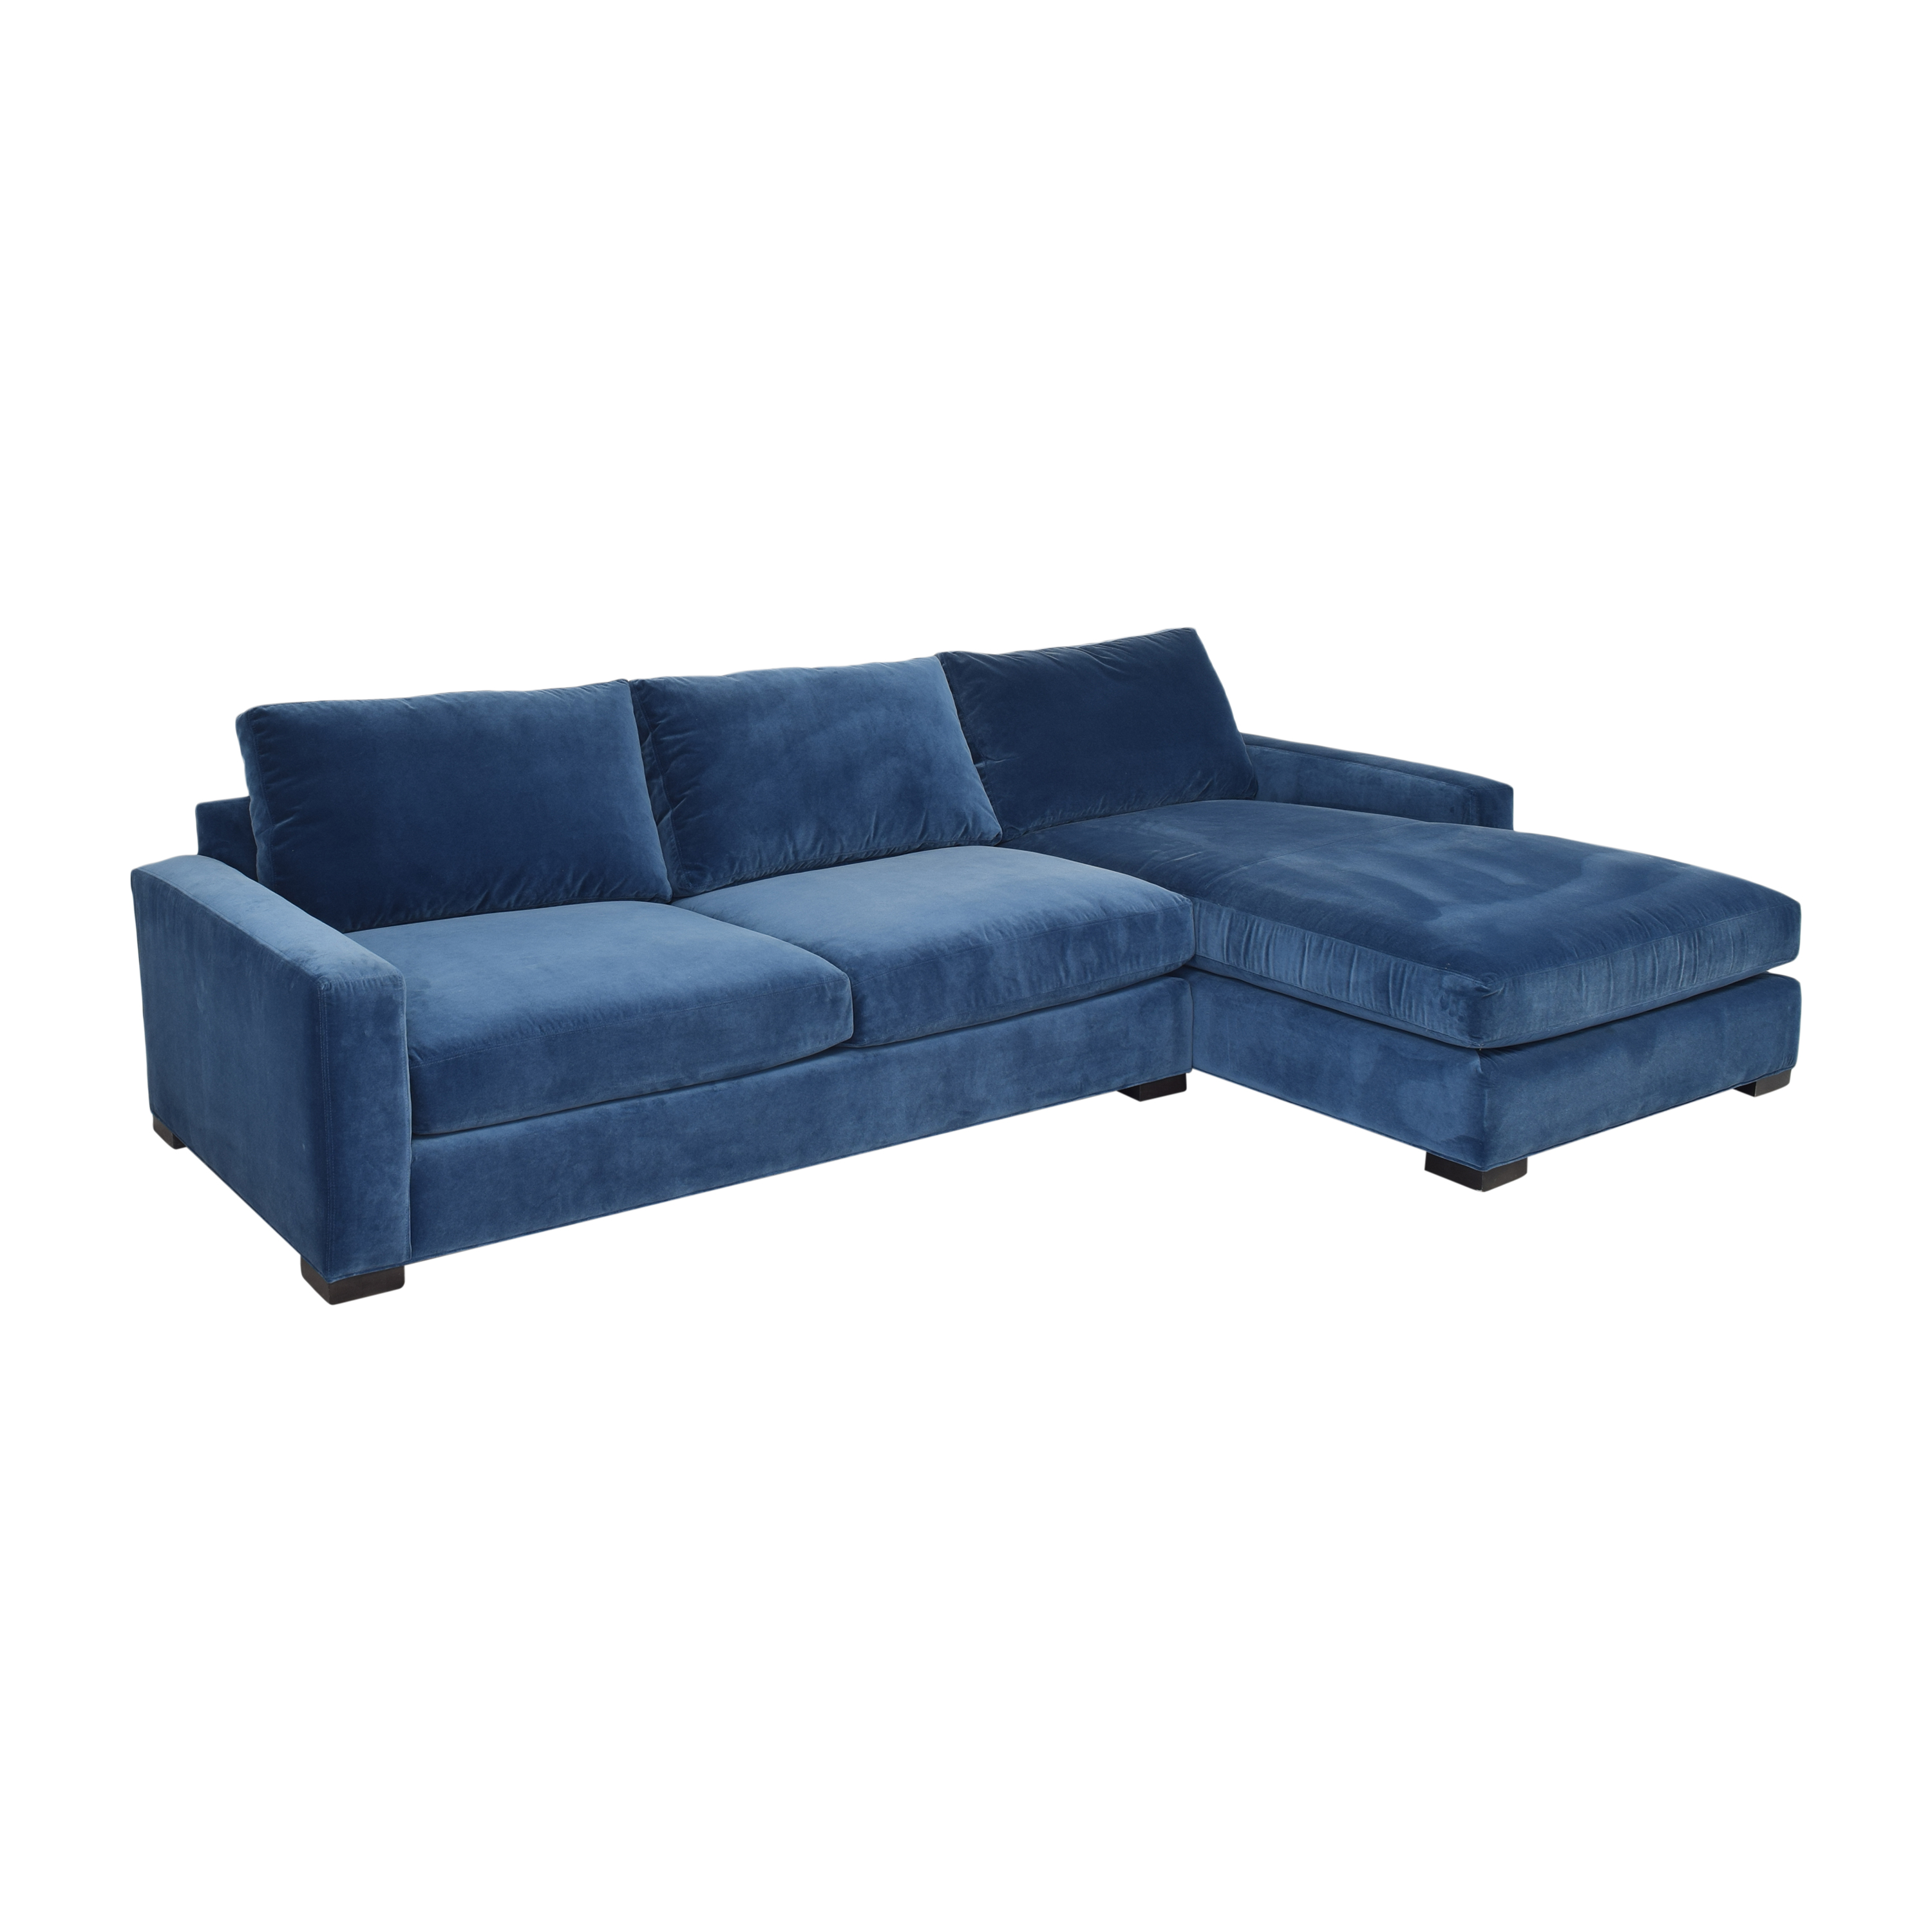 shop Room & Board Metro Sectional Sofa with Chaise Room & Board Sofas